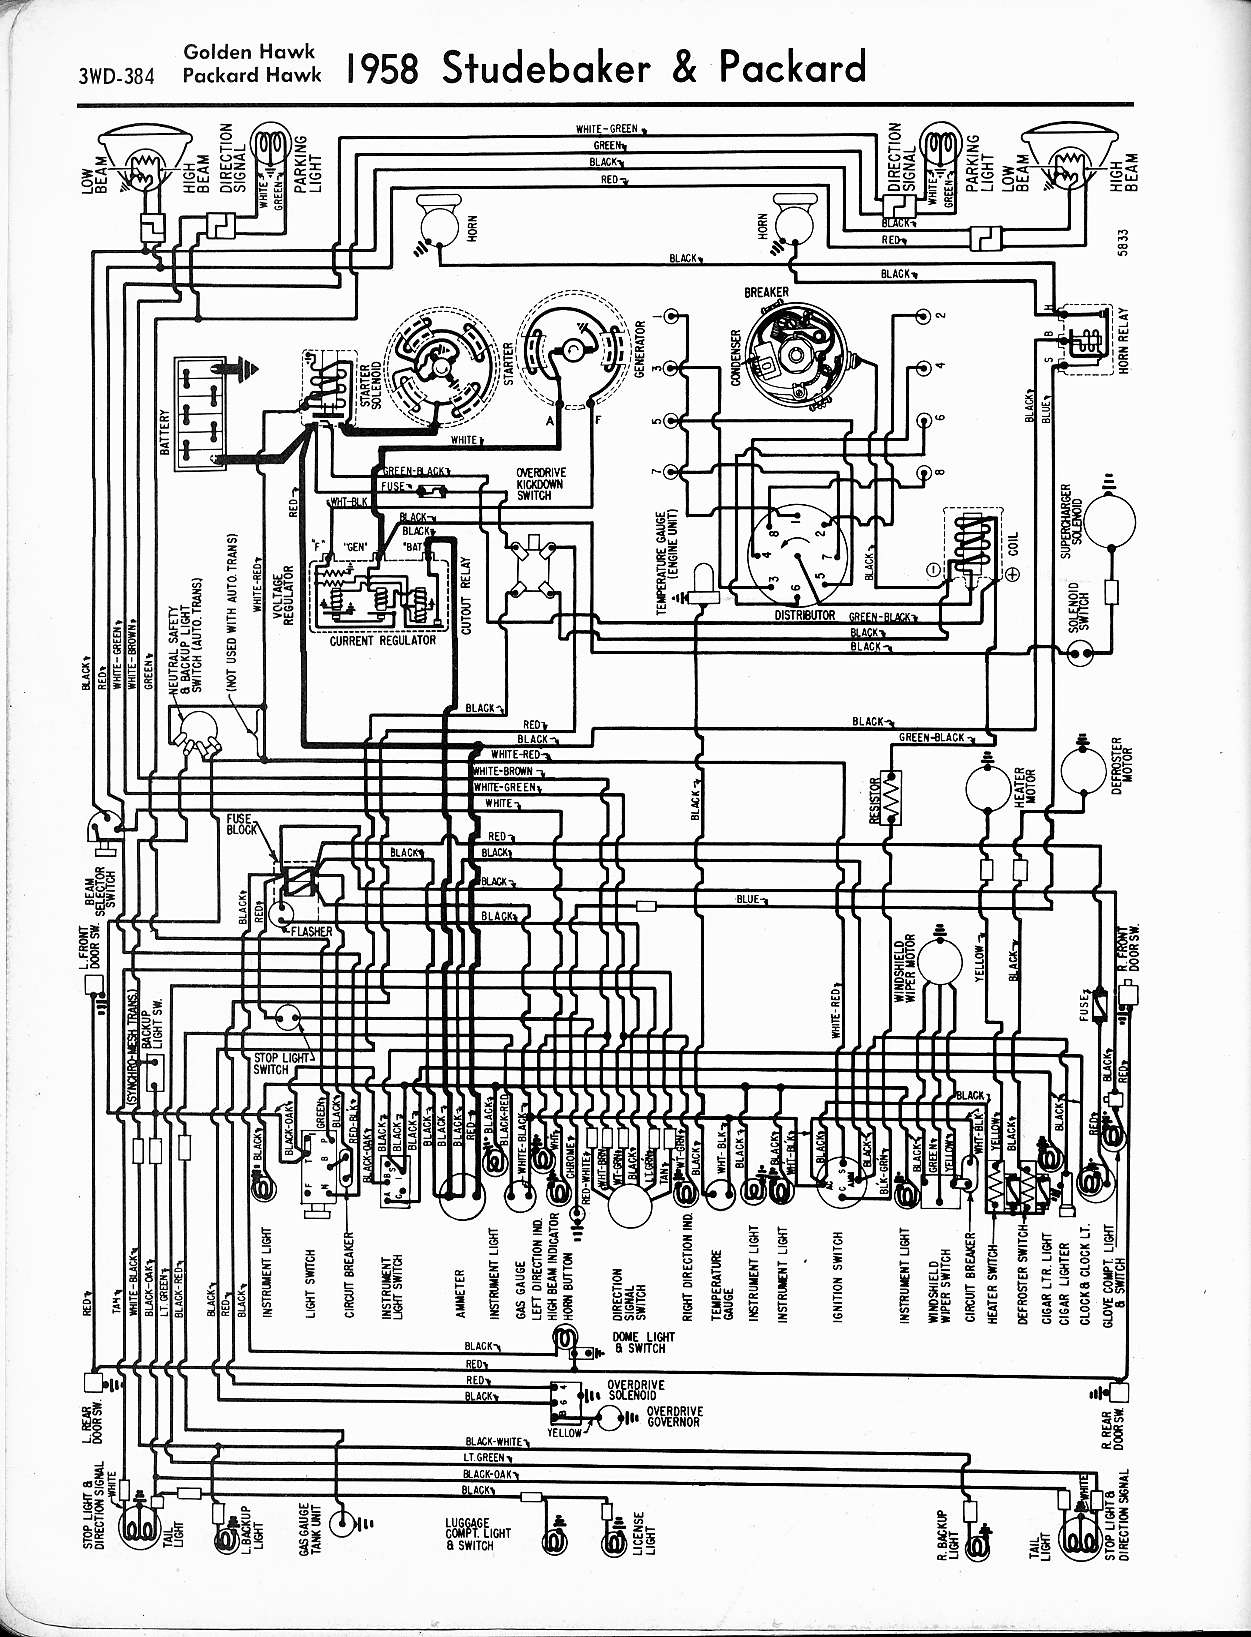 old air products wiring diagram Collection-1958 Studebaker And Packard Golden Hawk Packard Hawk 15-r